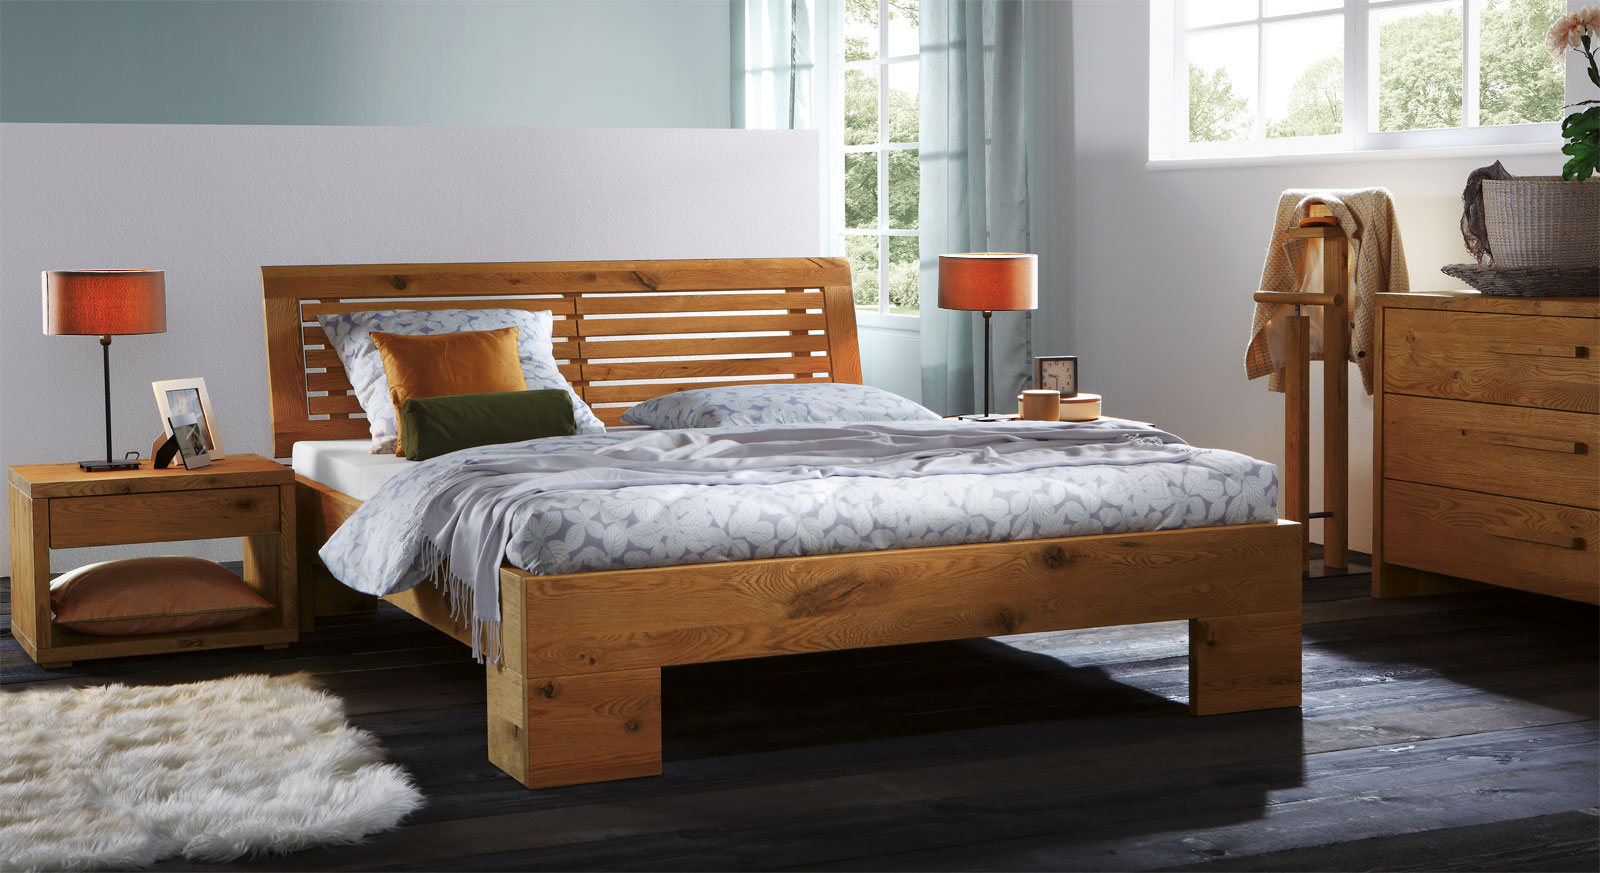 Bed Frames Half Circle Wood